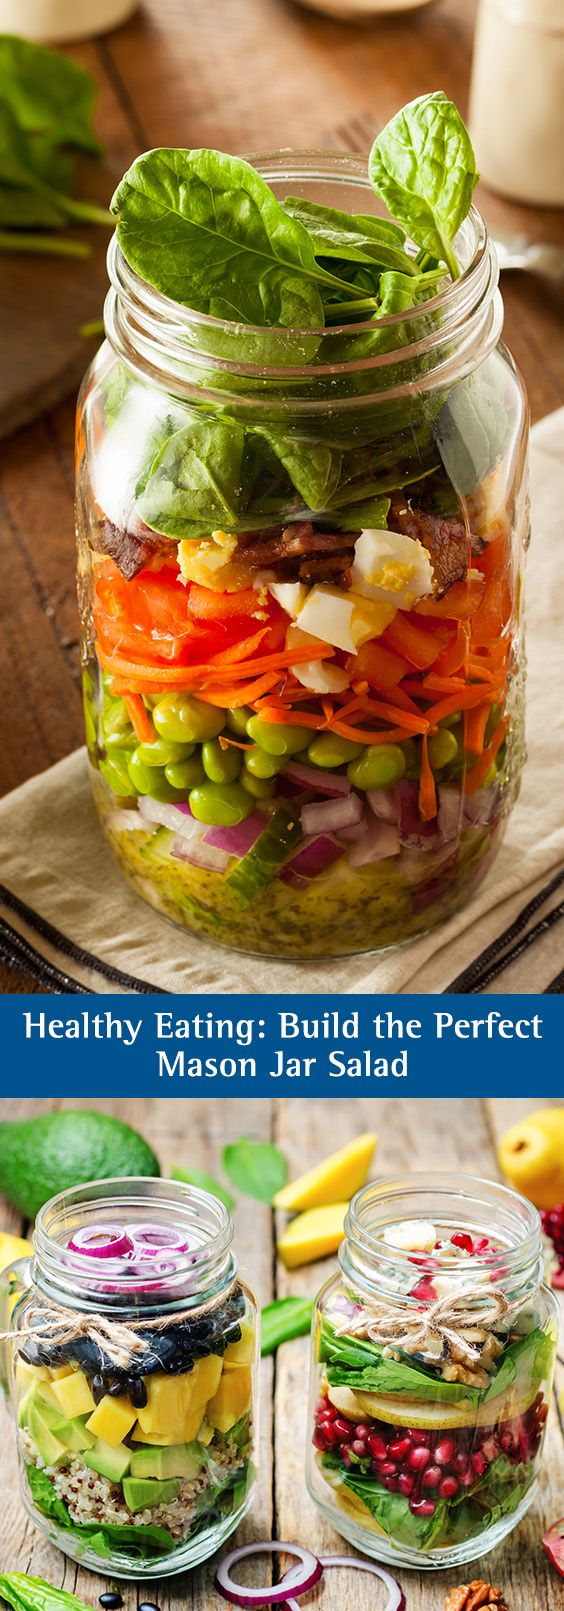 Healthy Eating: Build the Perfect Mason Jar Salad. Healthy salad recipe, easy to make, quick recipe.